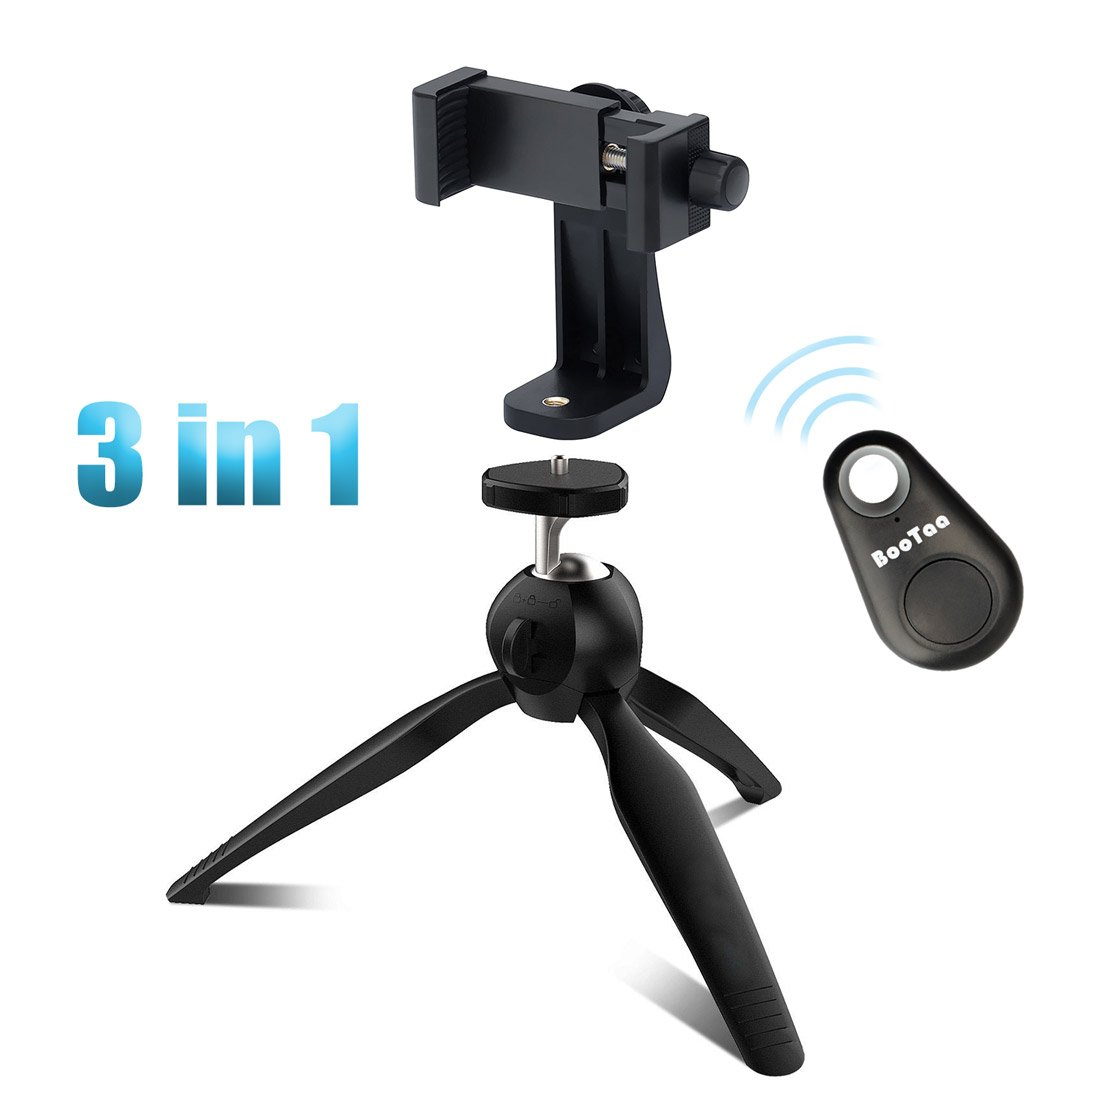 3 in 1 Mini Phone Tripods, Table Top Stand with 360 Rotating Universal Adapter Smartphone mount by Bootaa , tabletop tripod for iPhone, Regular Android Phone, Camera